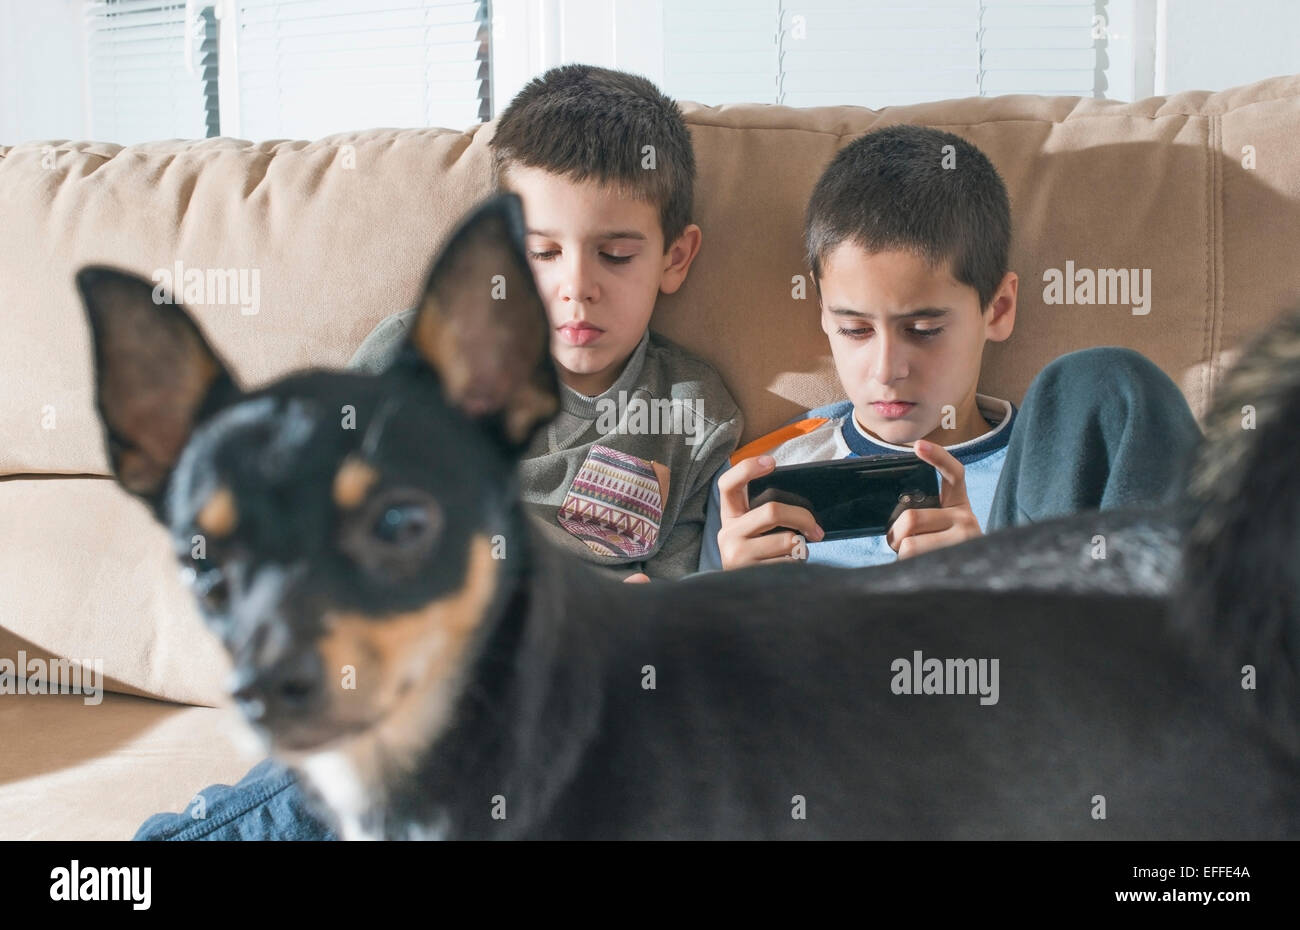 Two boys playing with their smartphones while dog standing in the foreground - Stock Image